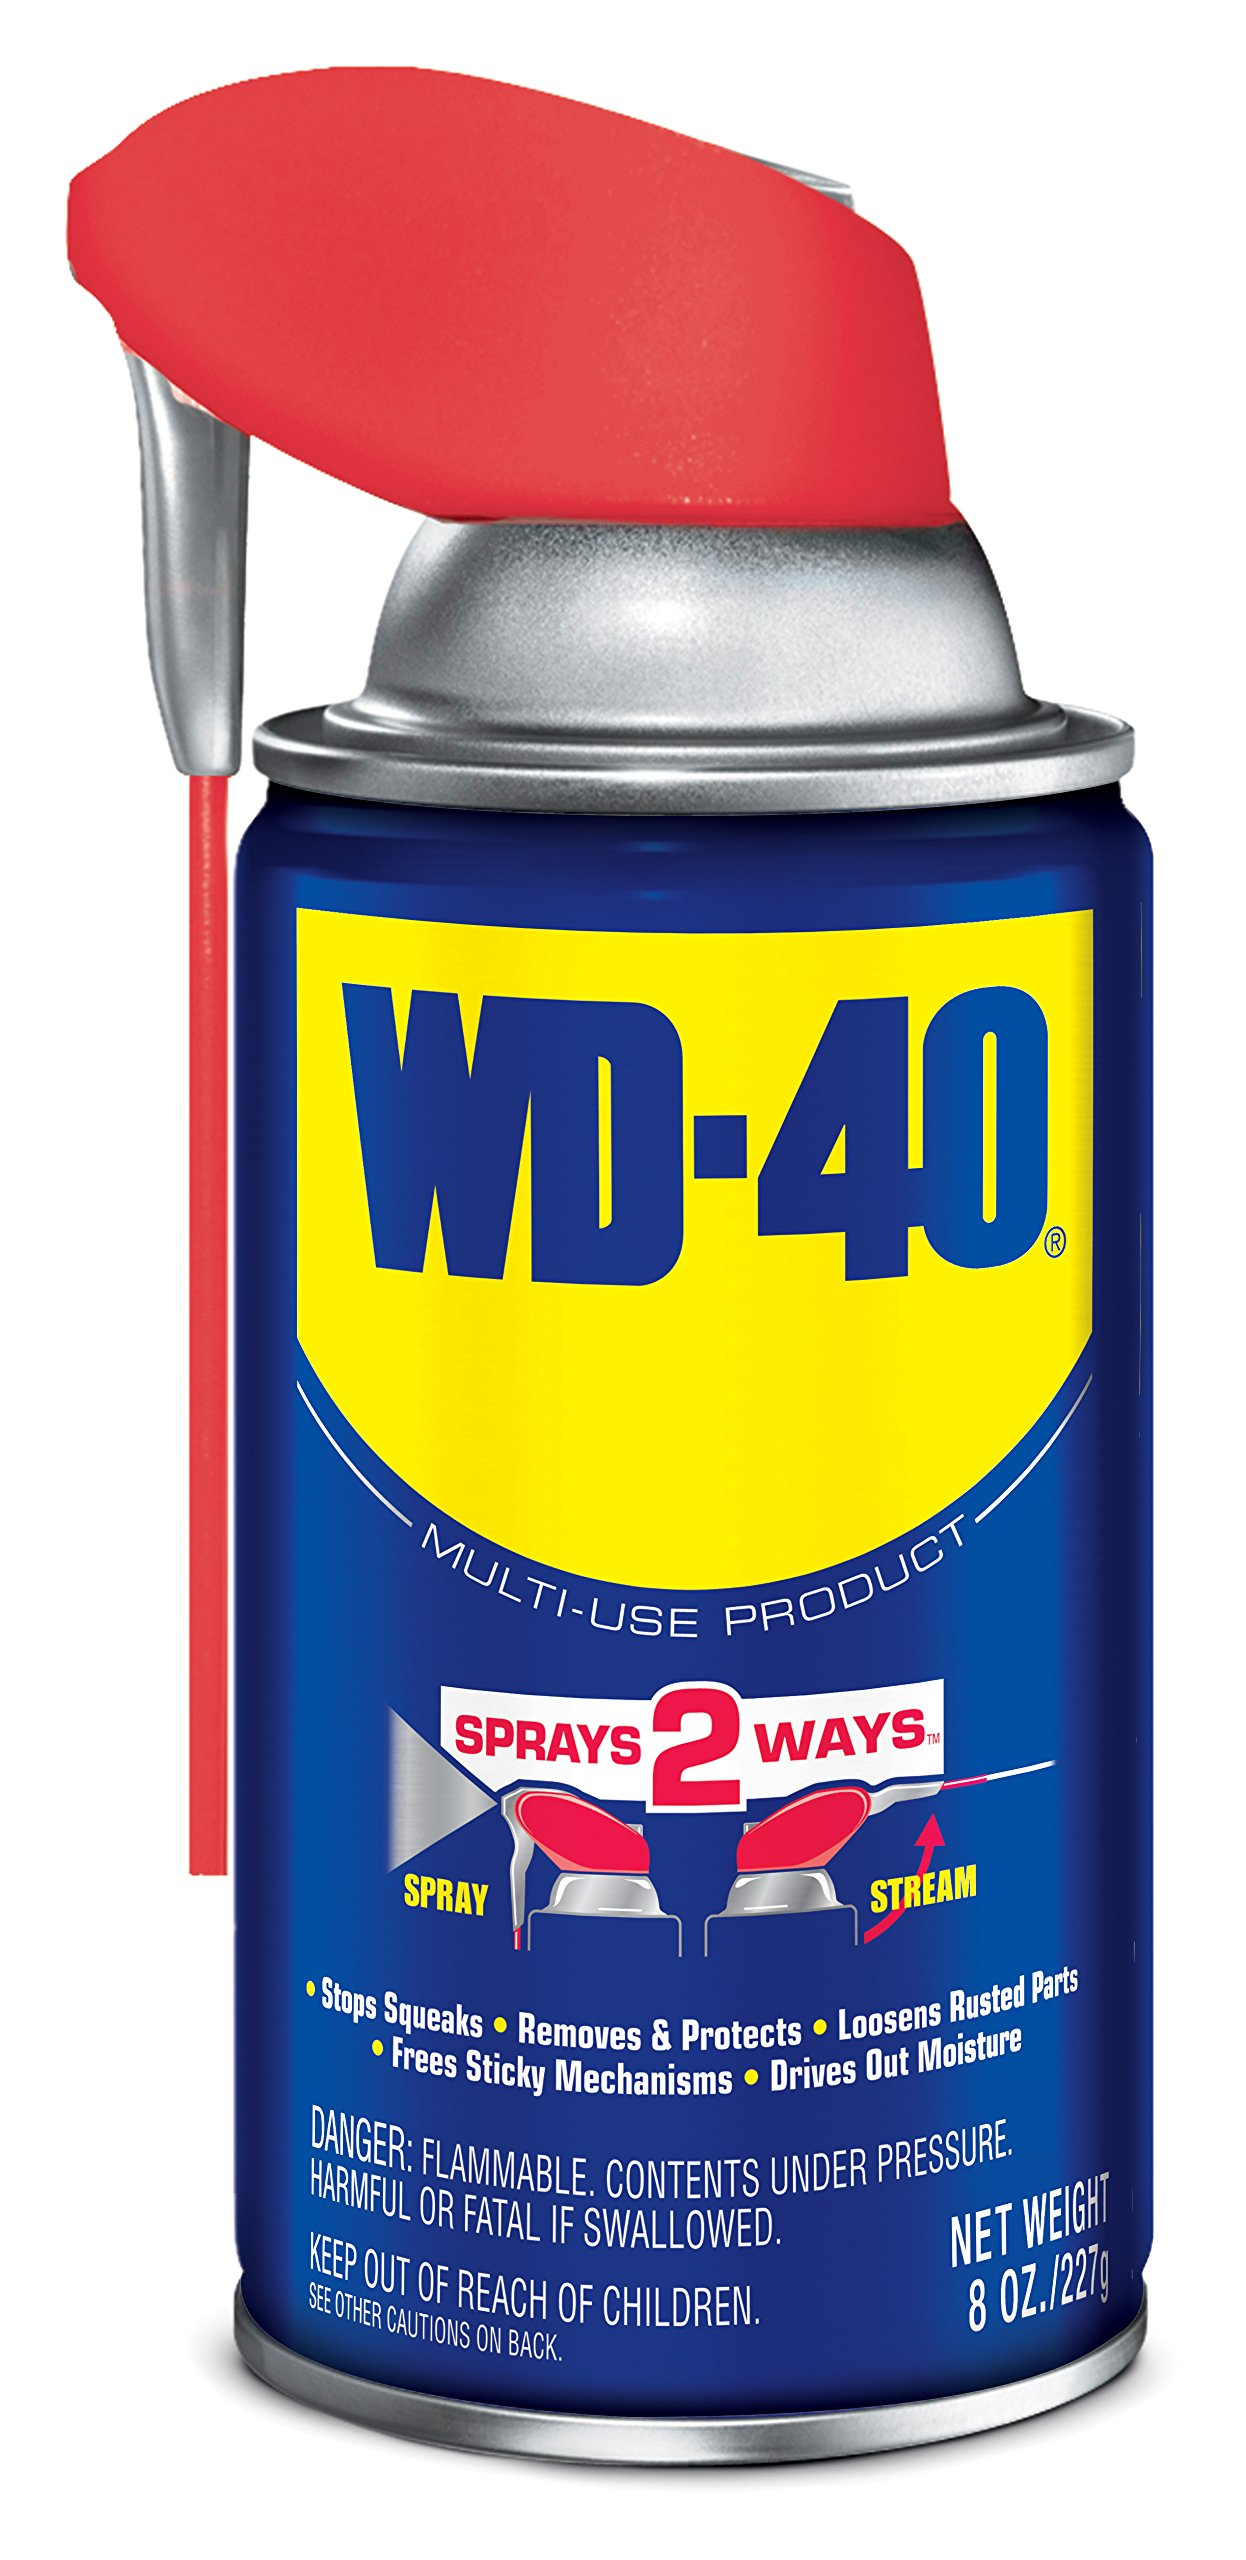 WD-40 Multi-Use Product - Multi-Purpose Lubricant with Smart Straw Spray. 8 oz. (12 Pack)